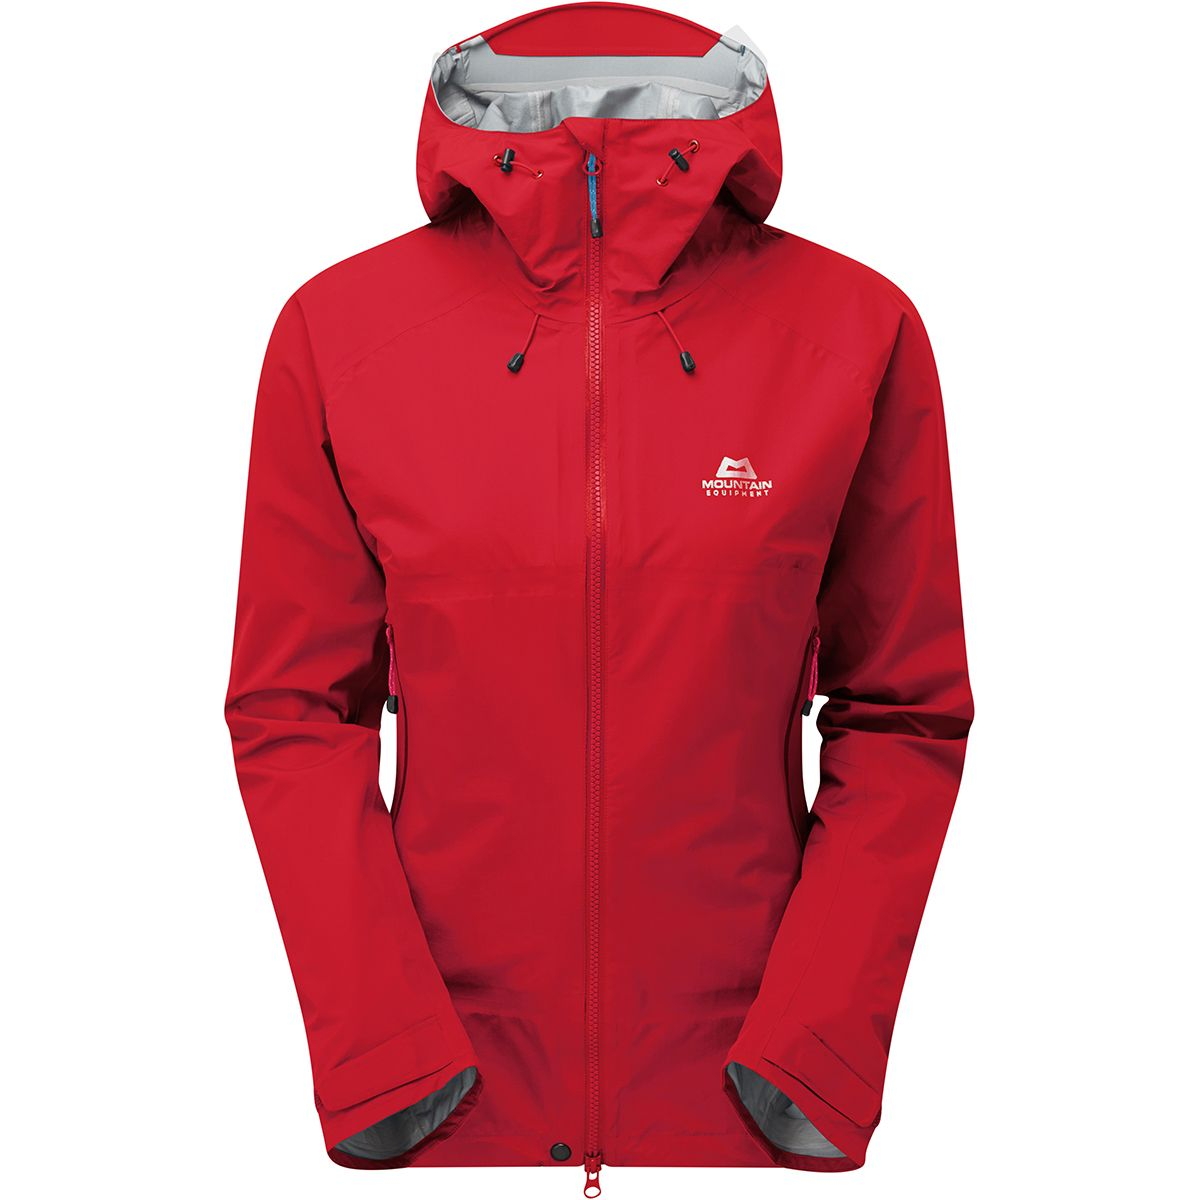 Mountain Equipment Damen Odyssey Jacke (Größe XS, Rot) | Hardshelljacken & Regenjacken > Damen